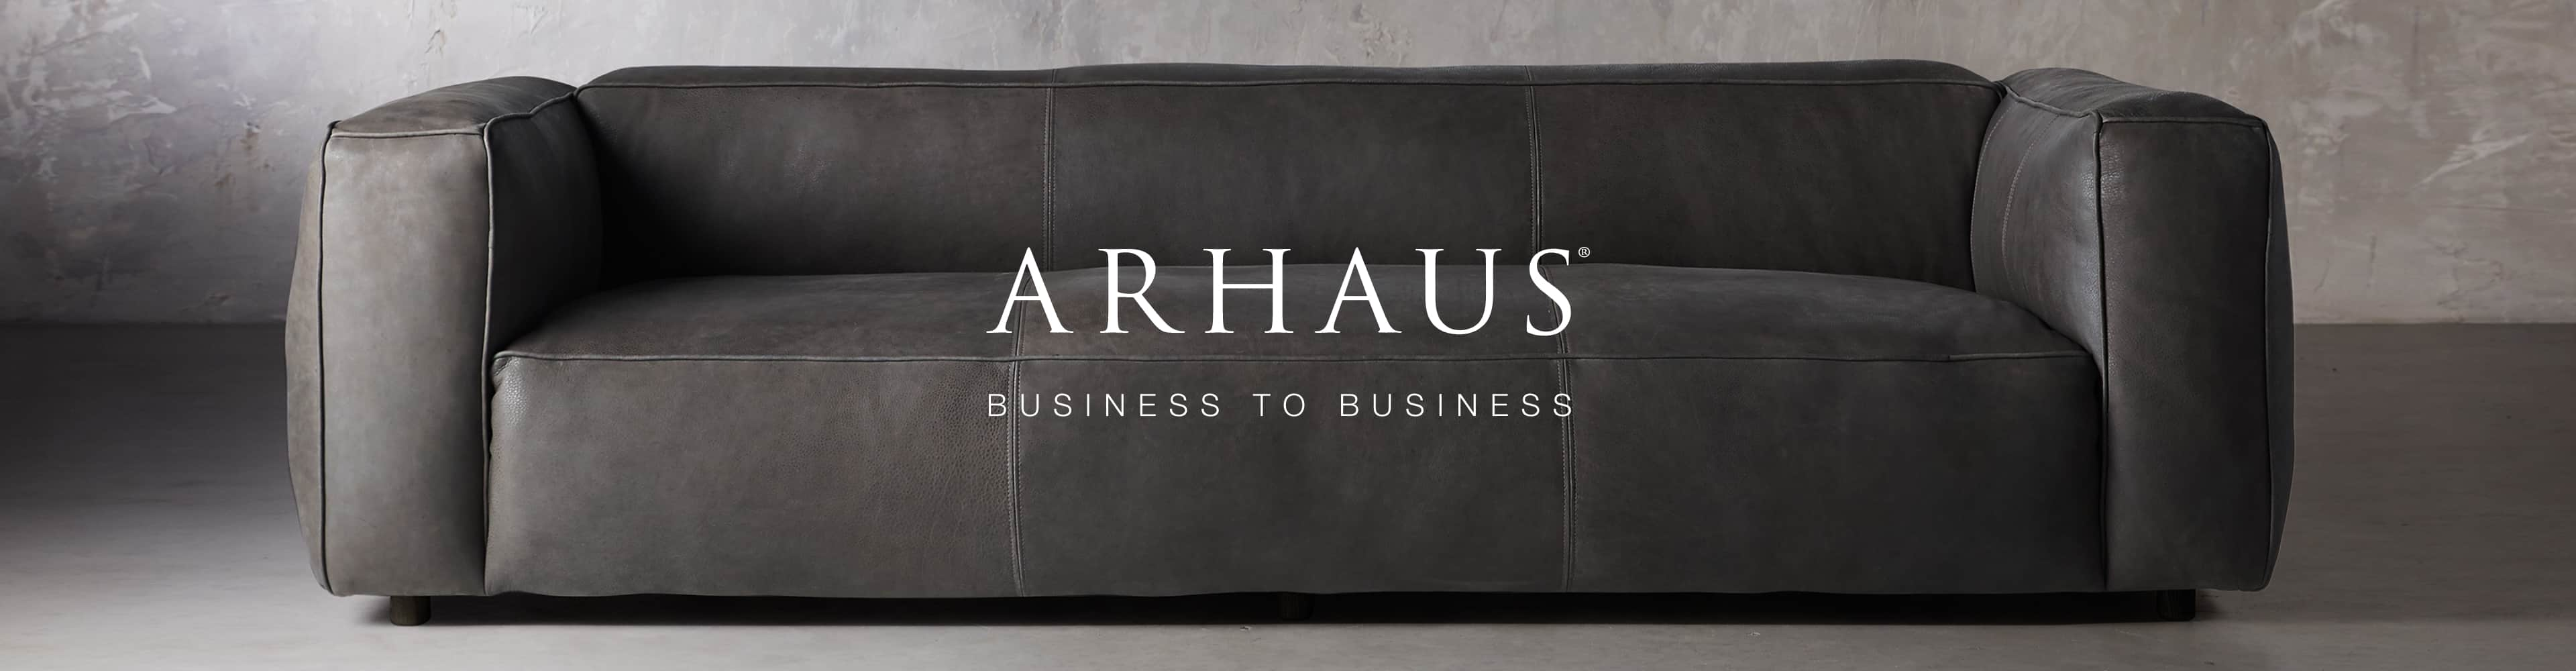 Shop Arhaus for Business